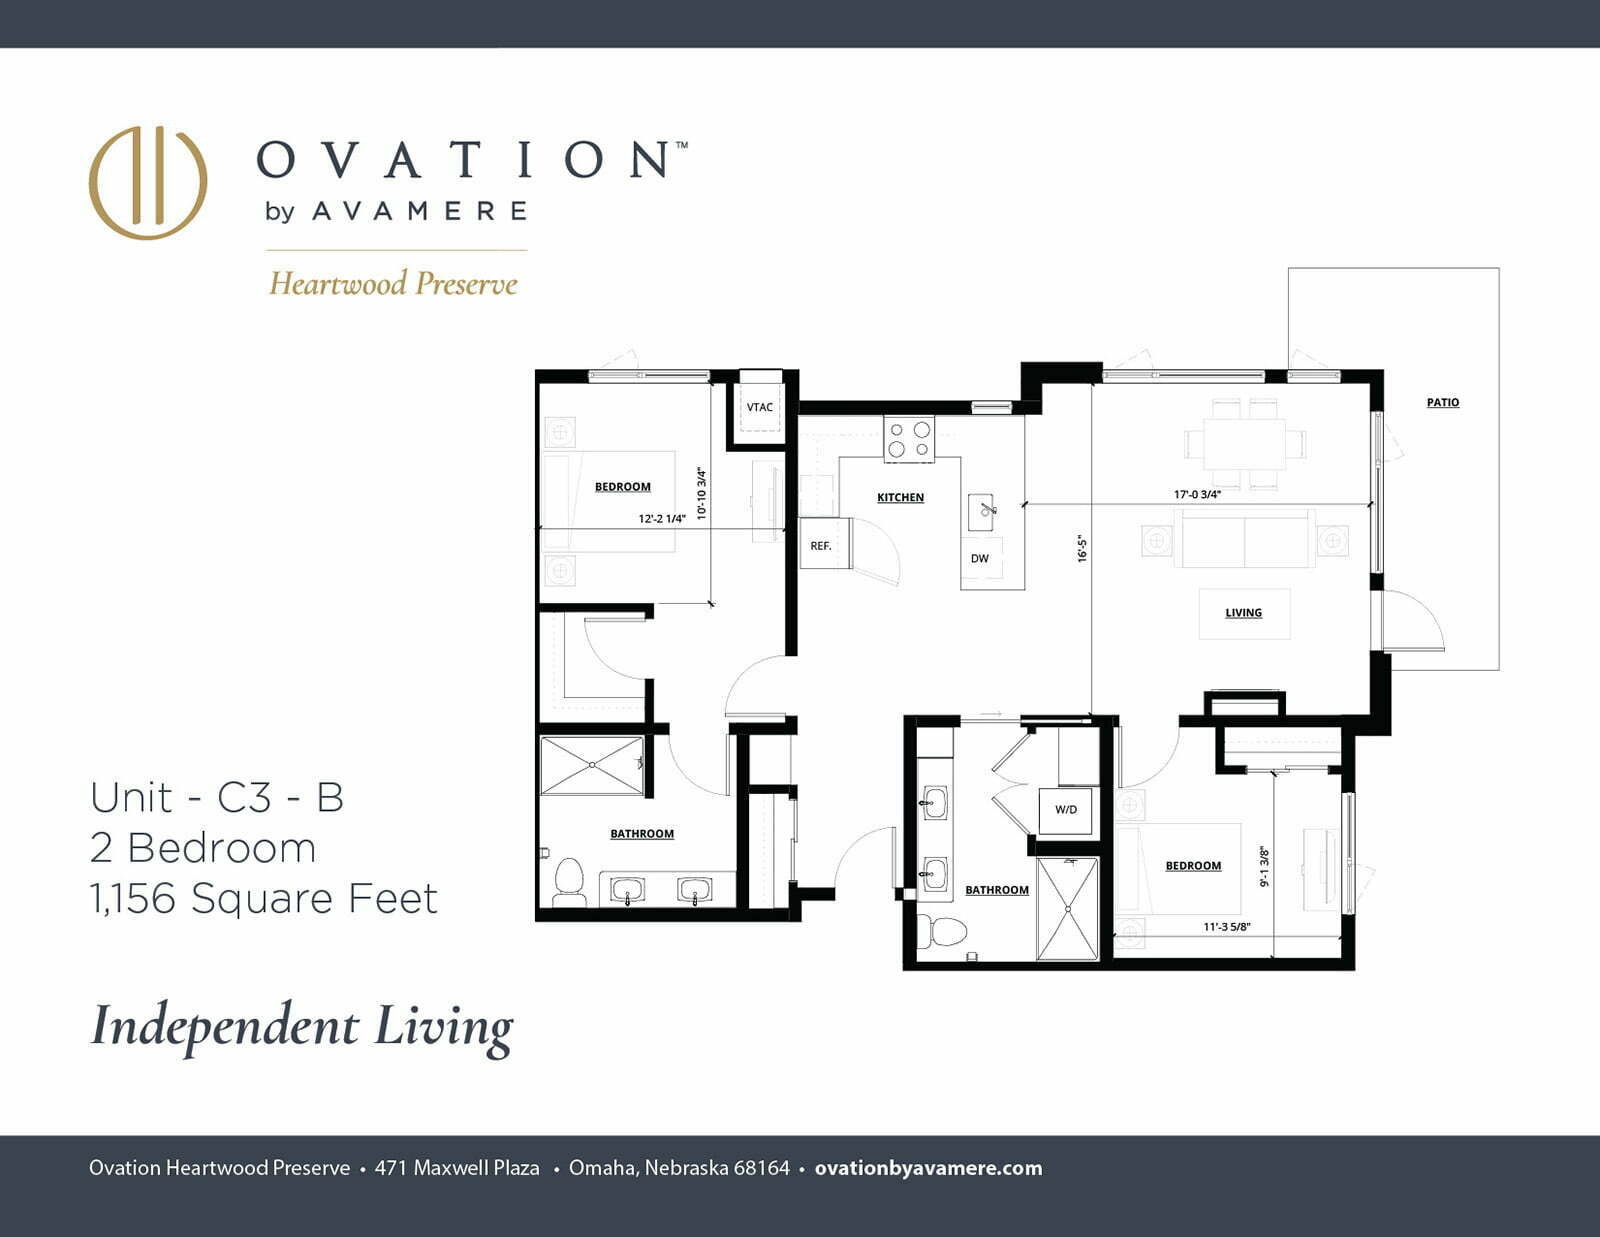 Independent Living | Room C3 - B